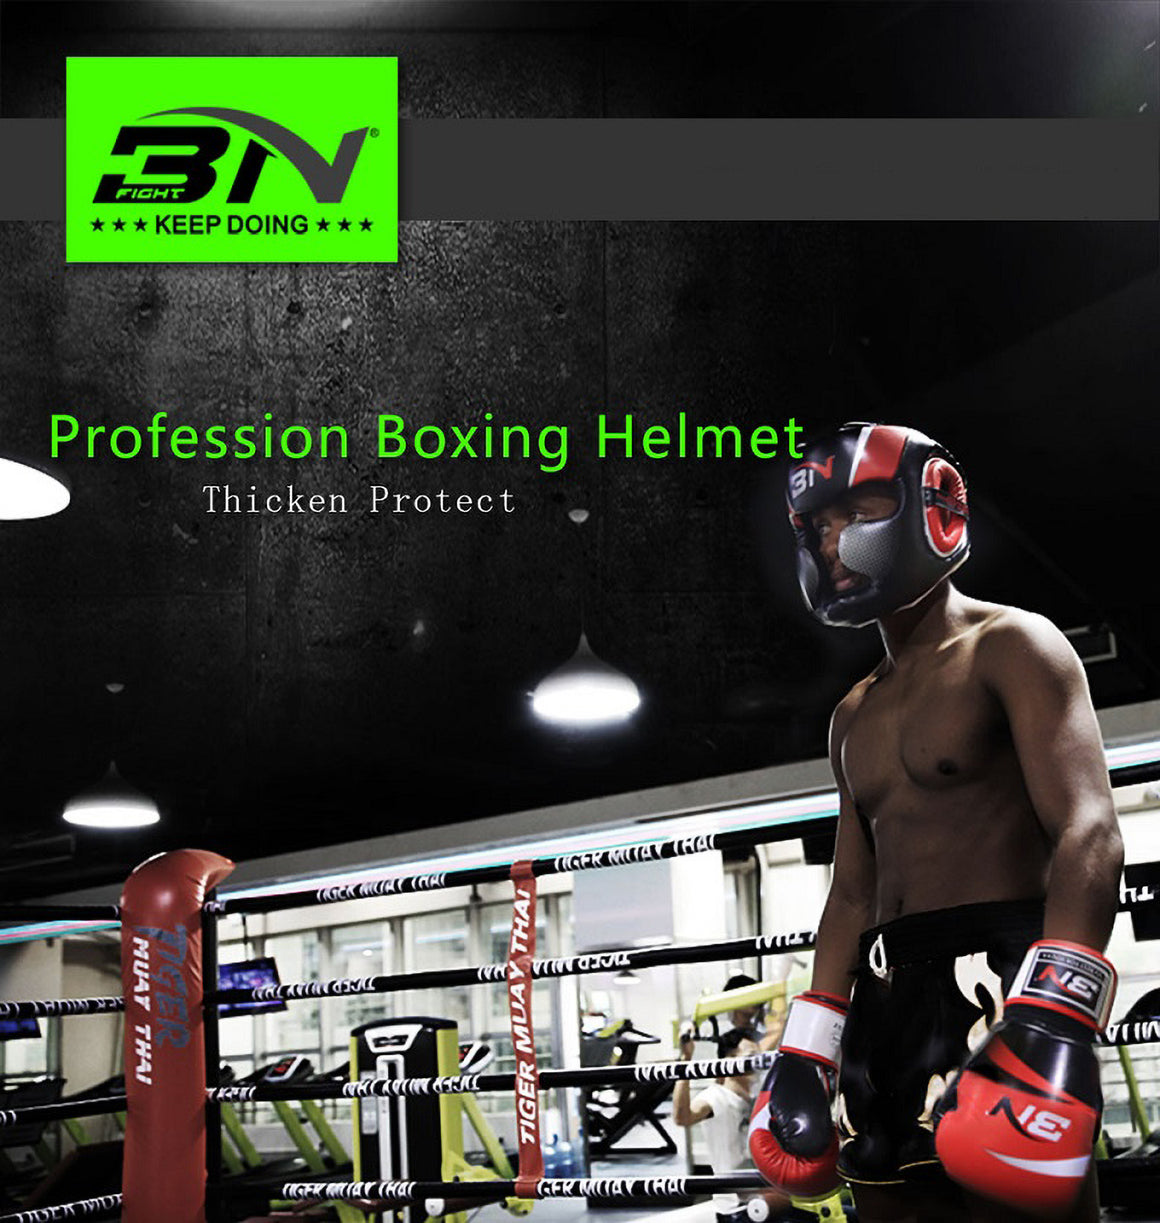 BN Boxing Headgear Men Women Muay Thai PU Leather Training Sparring Gym Equipment Grant Safe Boxing Helmet Taekwondo Guard